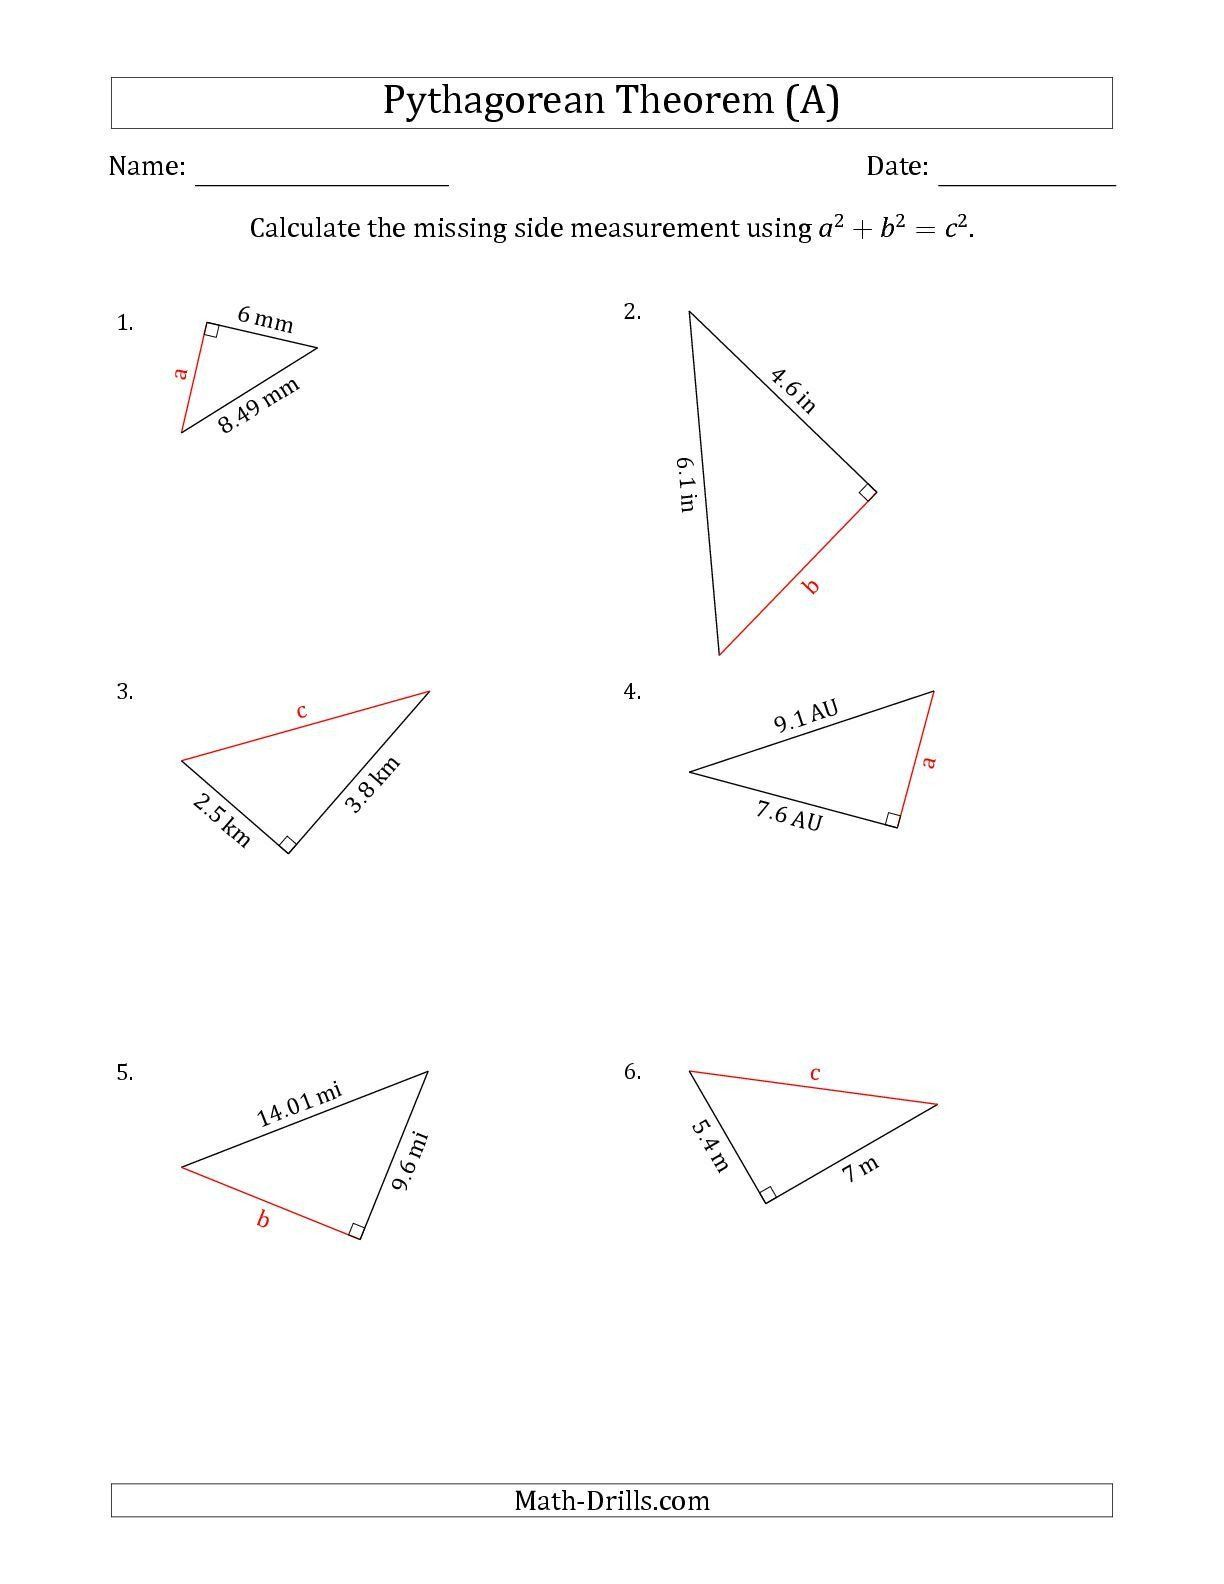 Pythagoras Theorem Worksheet With Answers The Calculate A